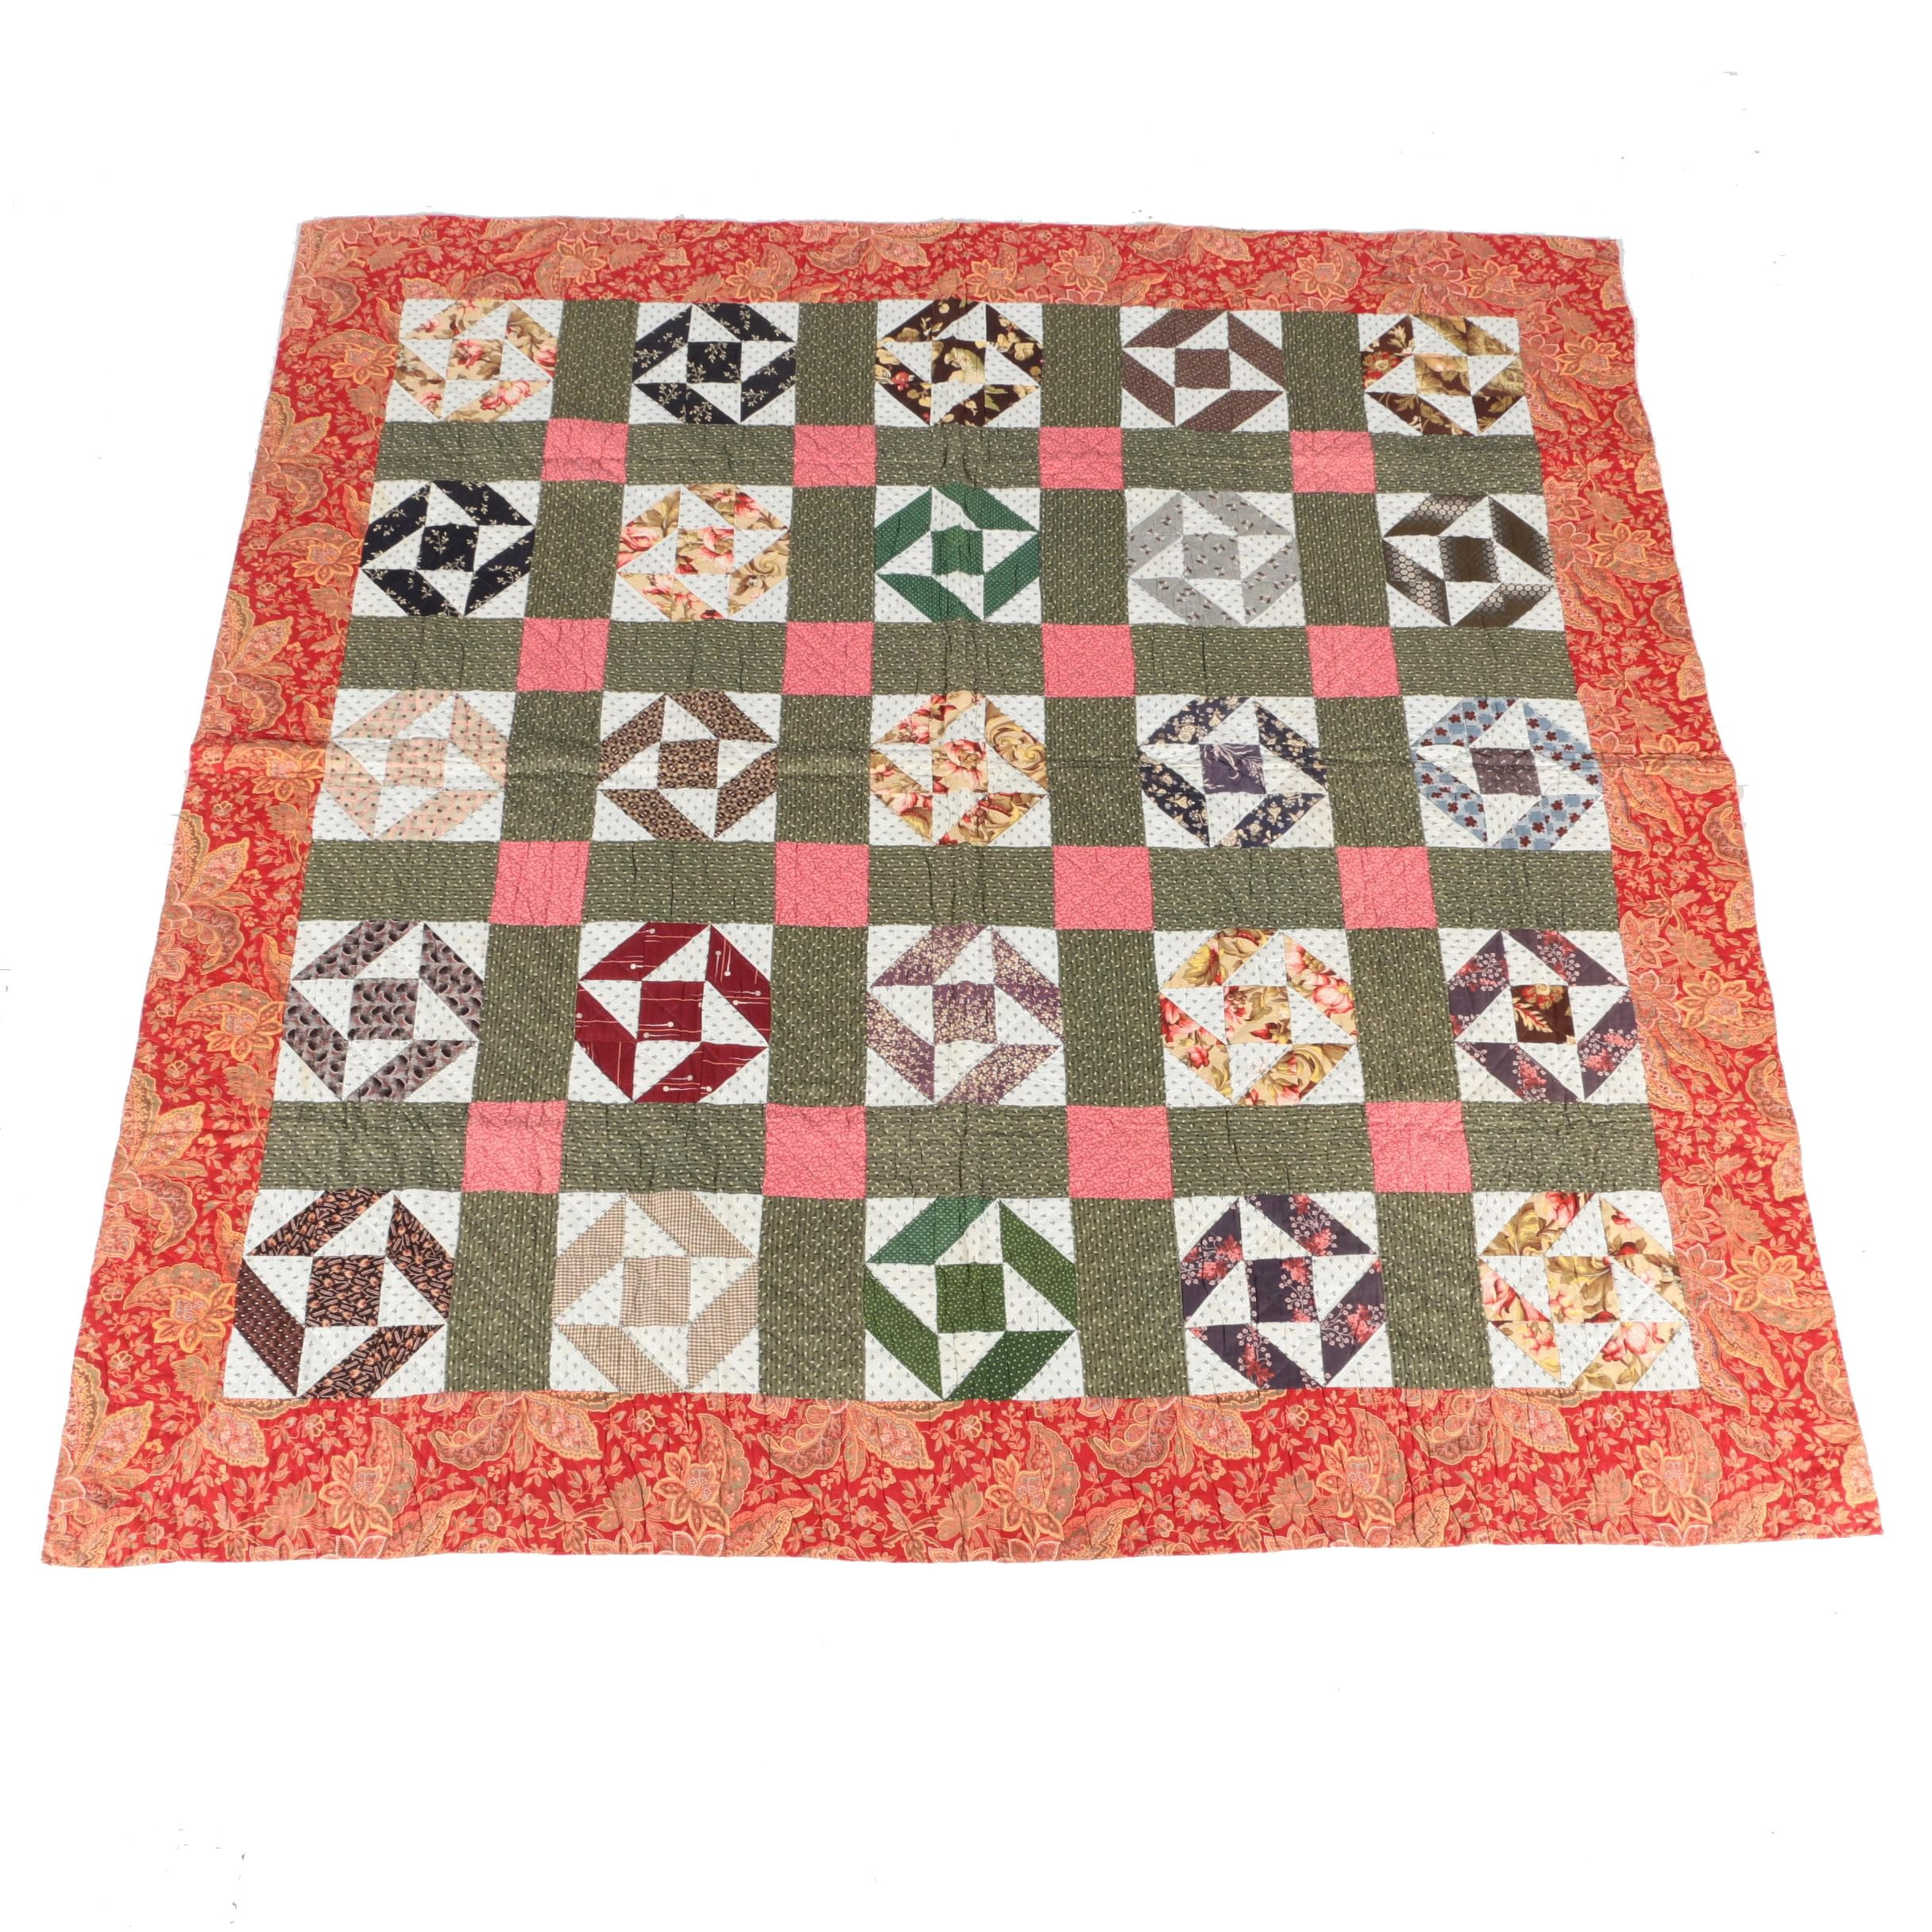 "Antique Handcrafted ""Eccentric Star Variation"" Quilt with Paisley Border"